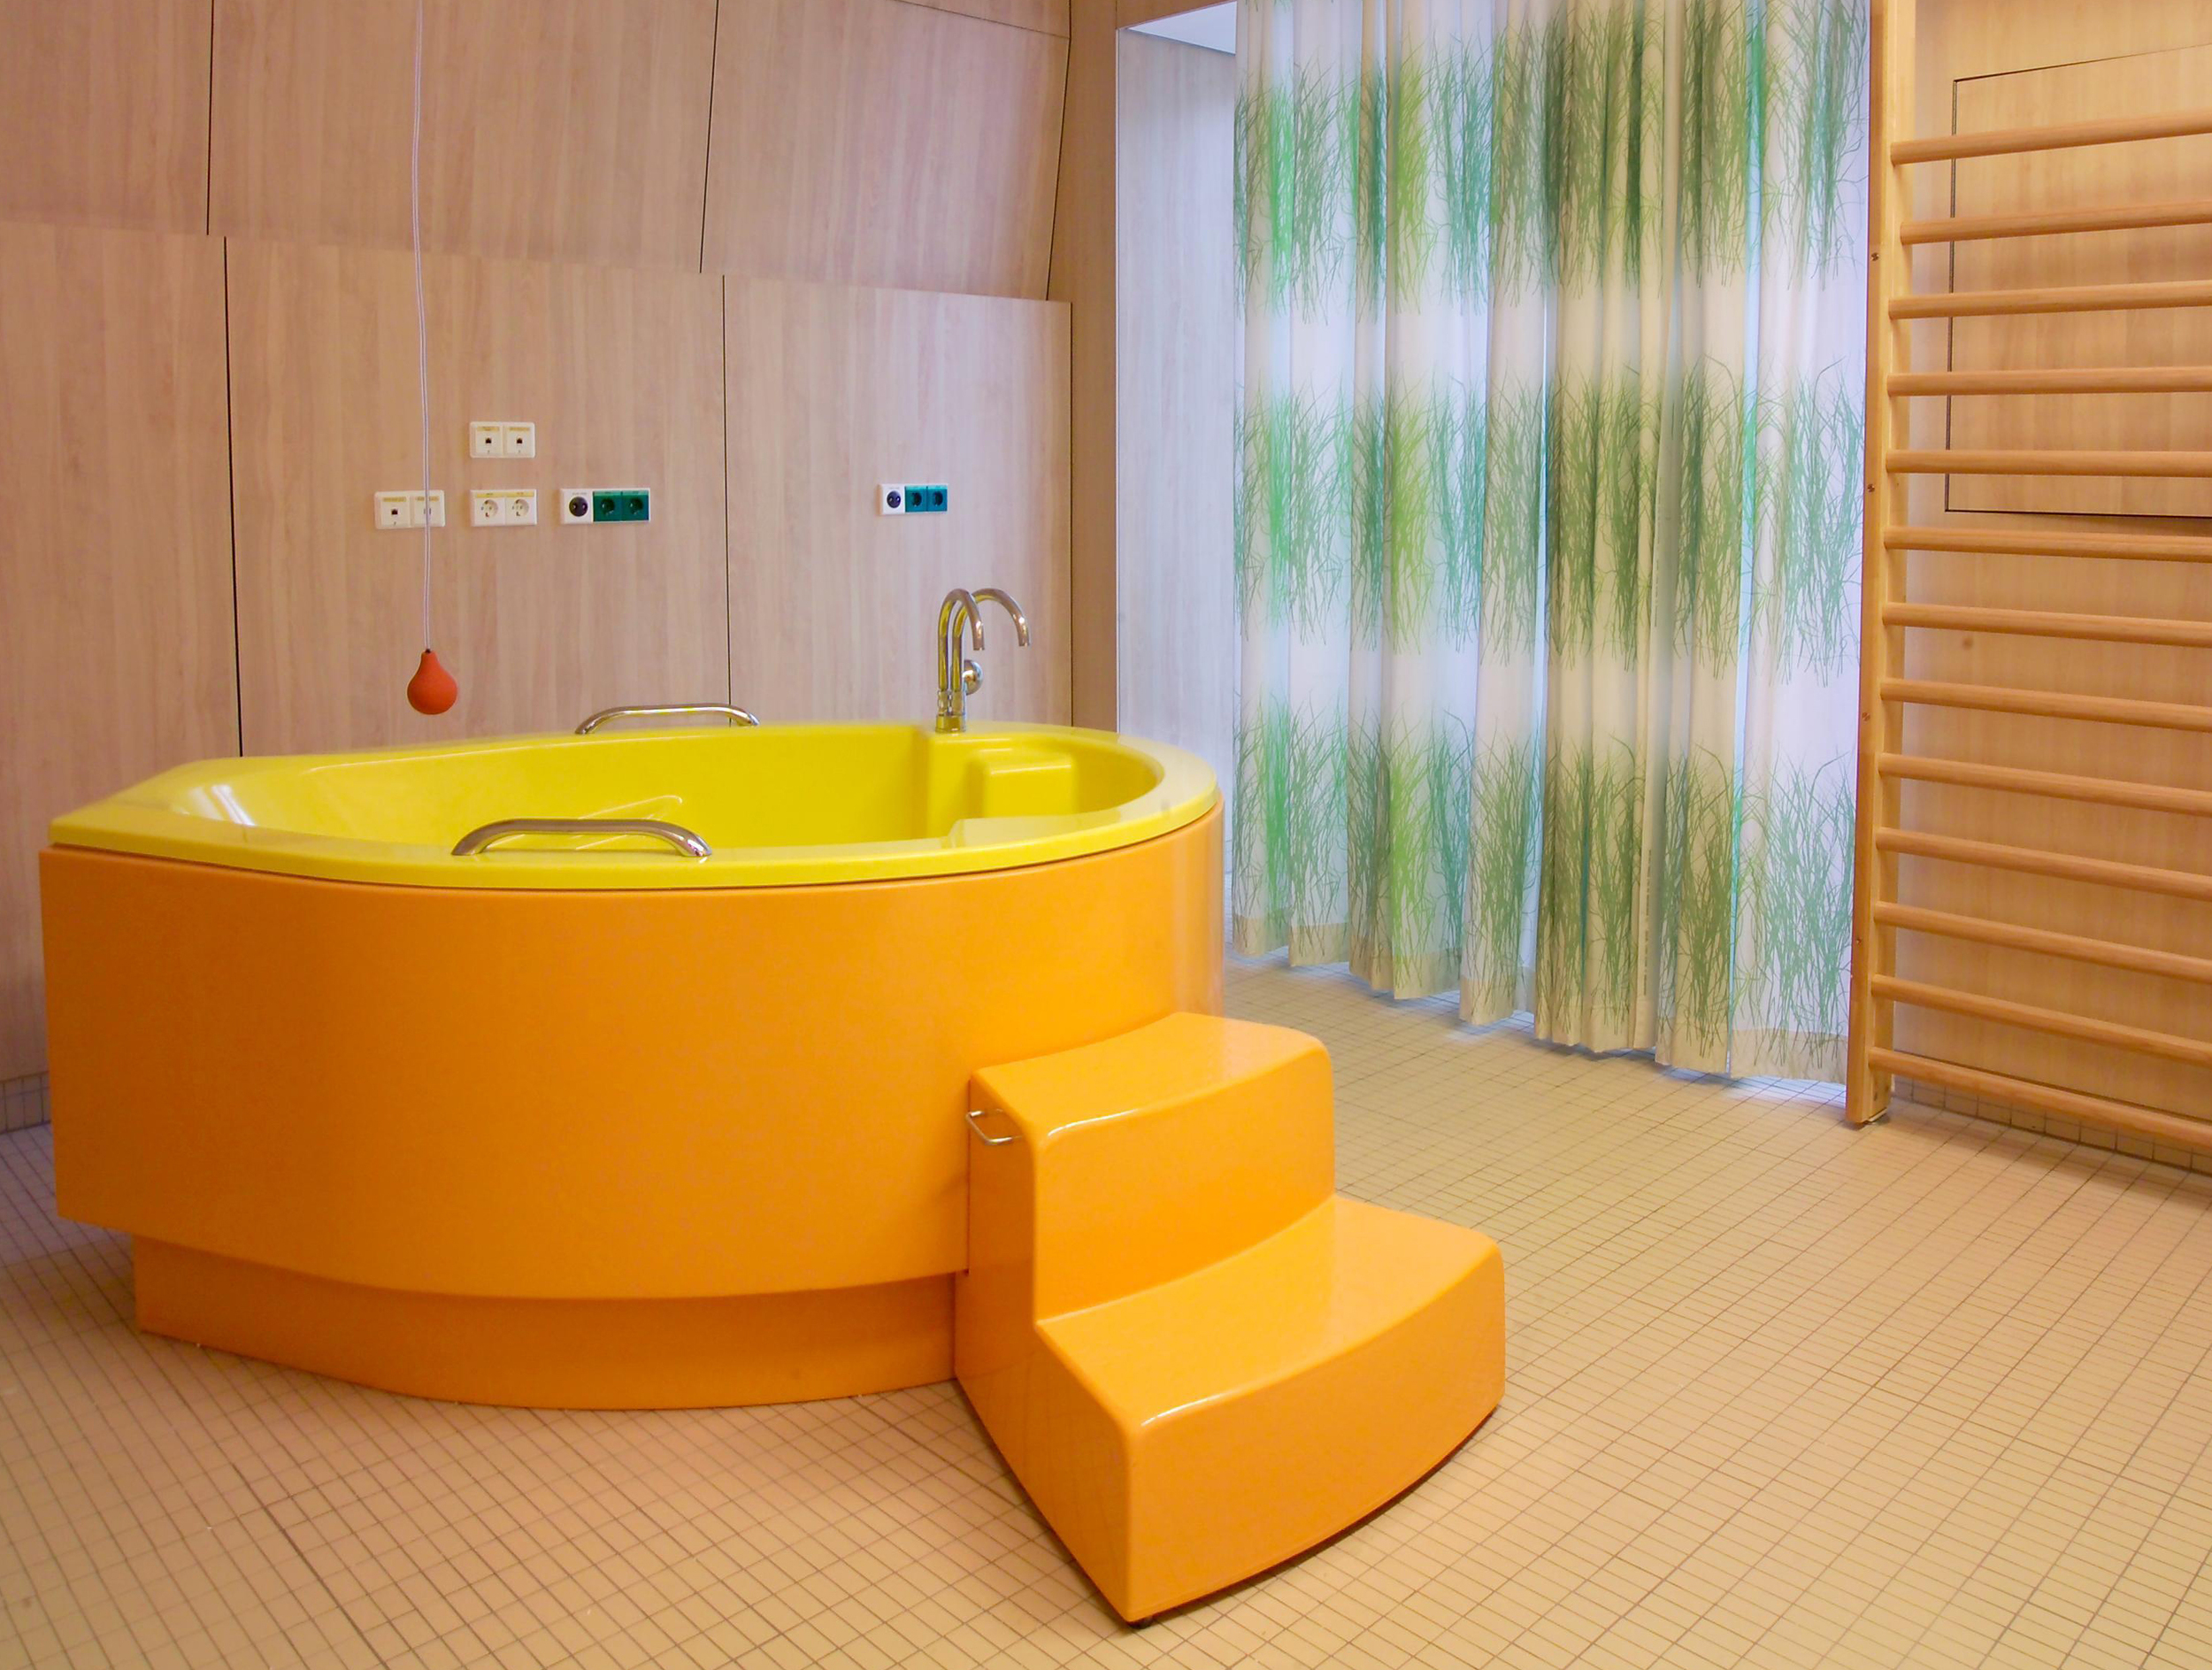 A bathtub - one of the many options for giving birth - in the labor and delivery room at LKH Graz Frauenklinik. Photo: Schwager/LKH-Univ. Klinikum Graz